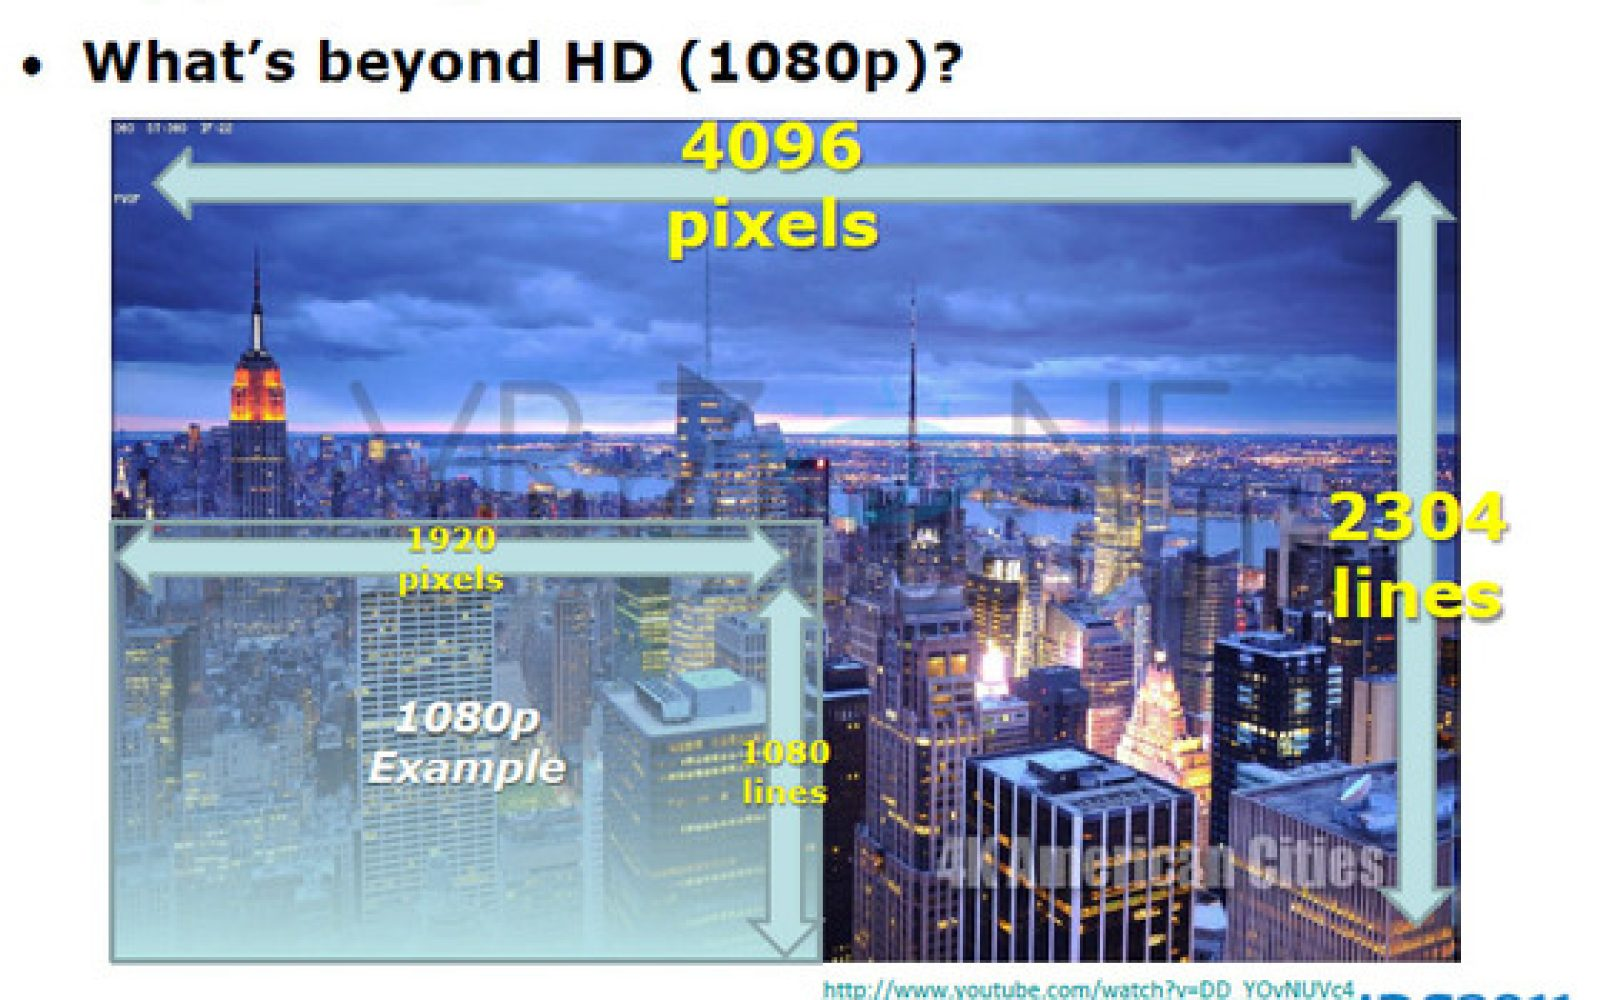 Intel's Ivy Bridge chips could enable 2012 Macs to support 4K